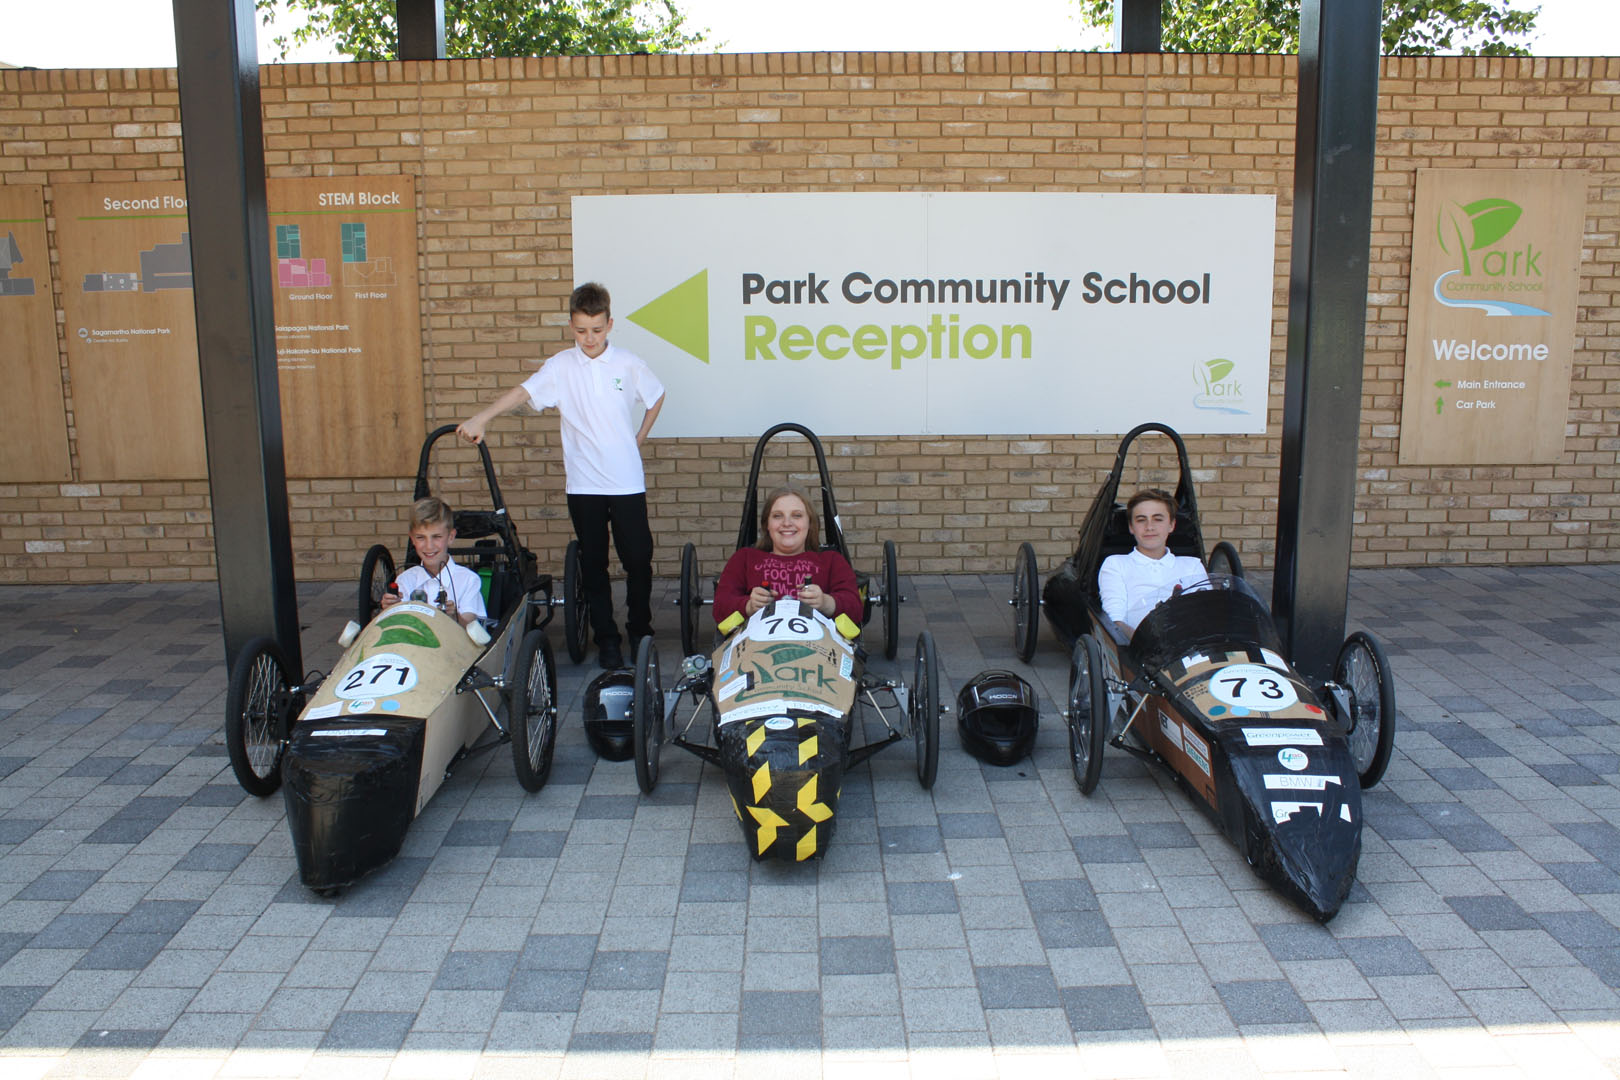 Park Community Schools Greenpower Team